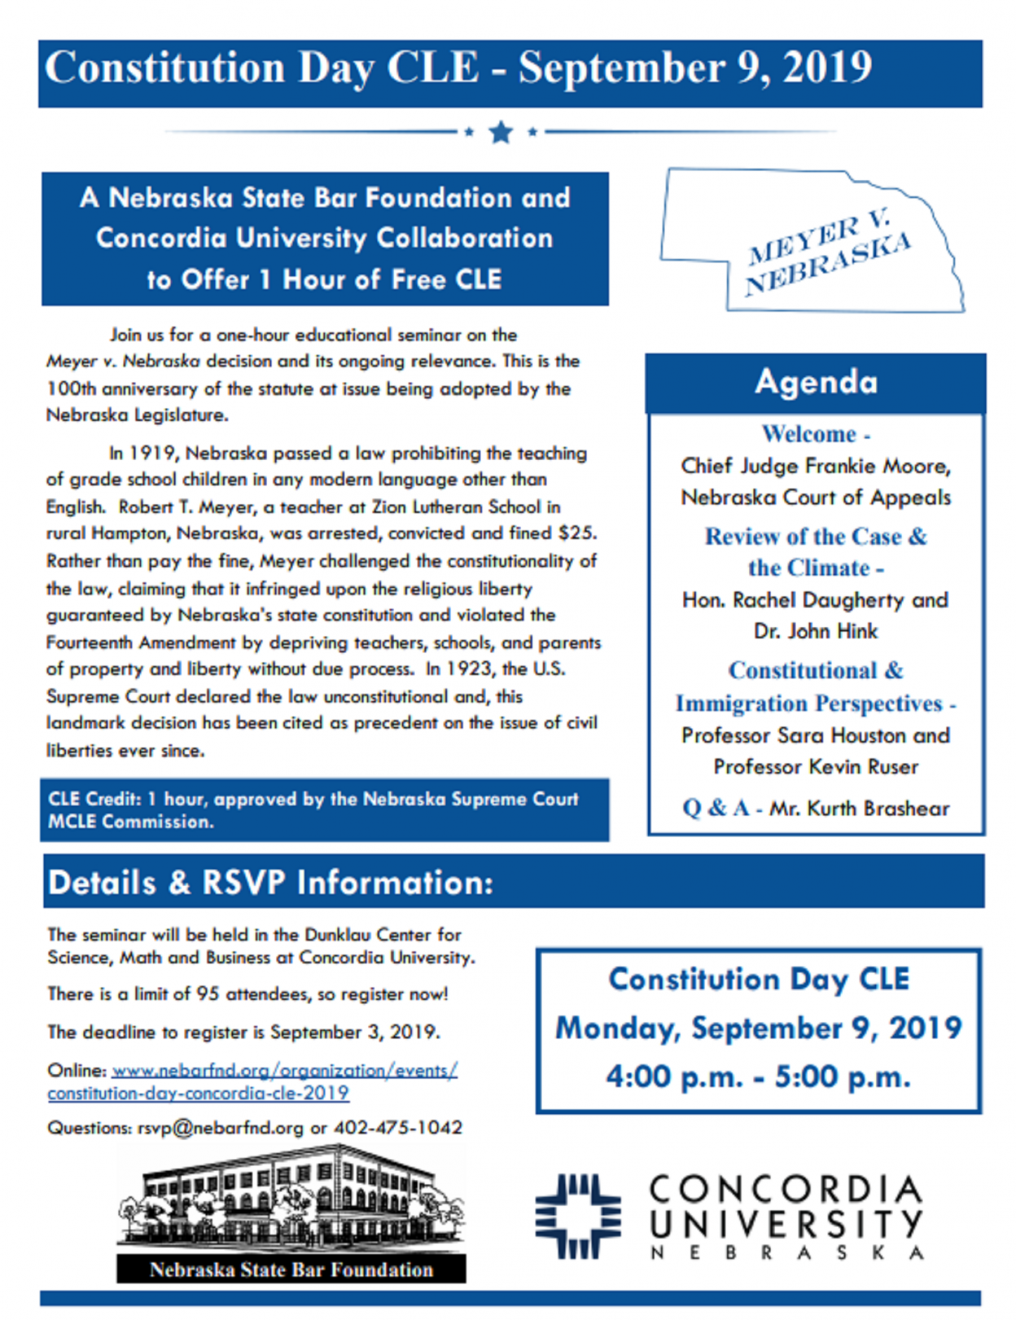 Constitution Day CLE